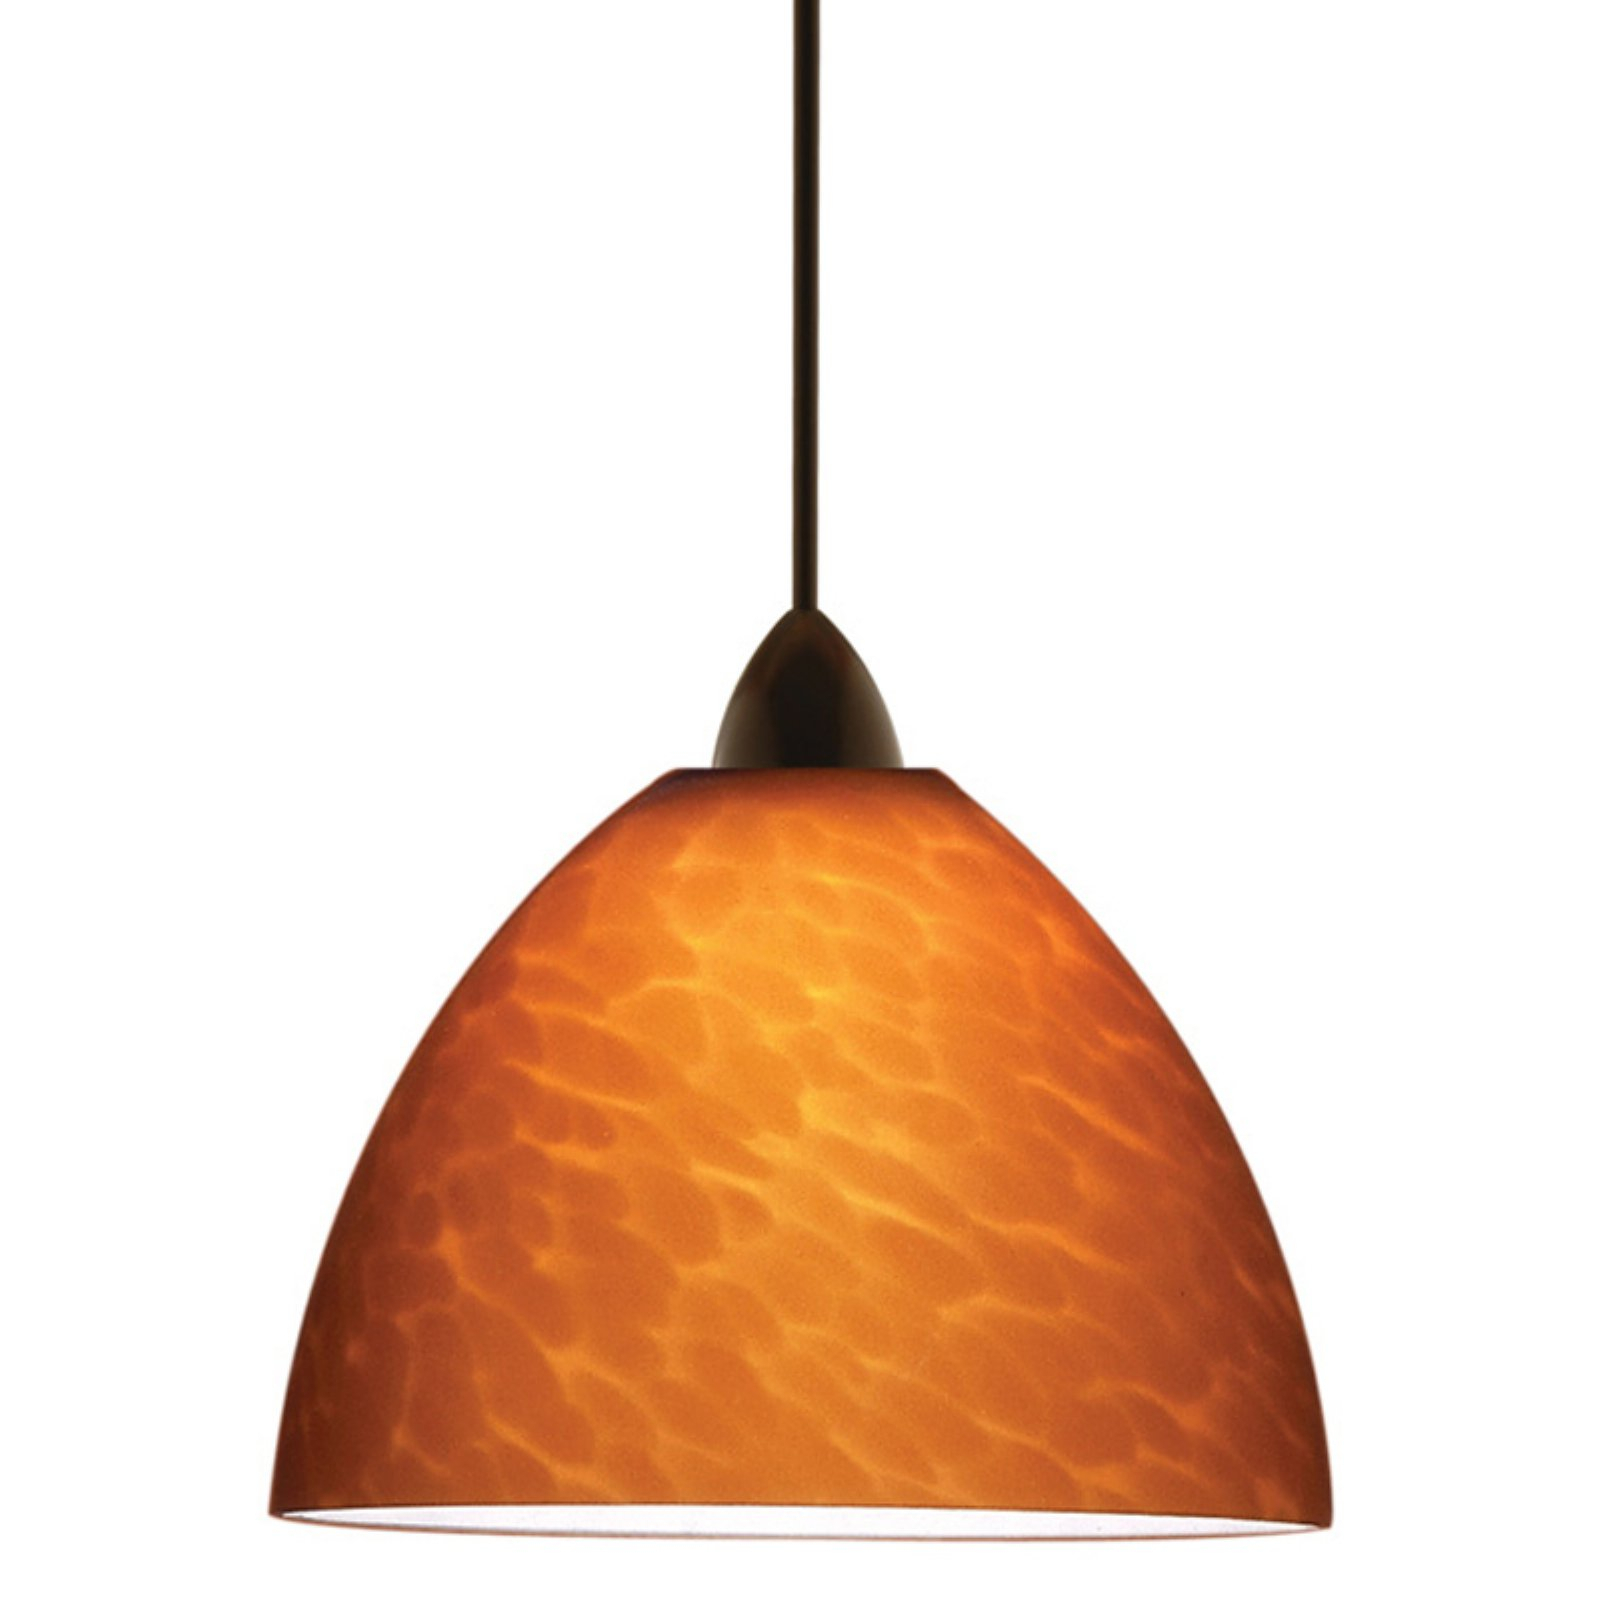 Wac Lighting Faberge Mp 541 Pendant Light | Products In 2019 With Abordale 1 Light Single Dome Pendants (View 18 of 30)